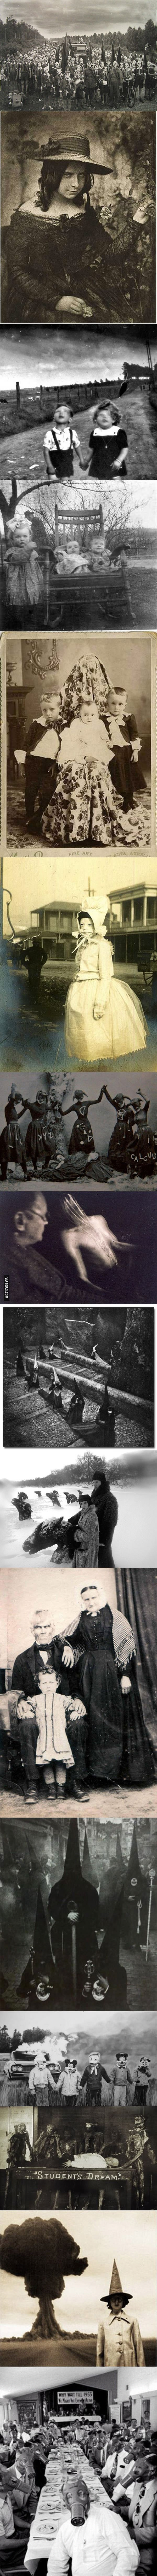 """15 creepy pictures of ancient people ~ that one dude in the middle has to be related to Lurch from """"Adams Family"""". :)"""